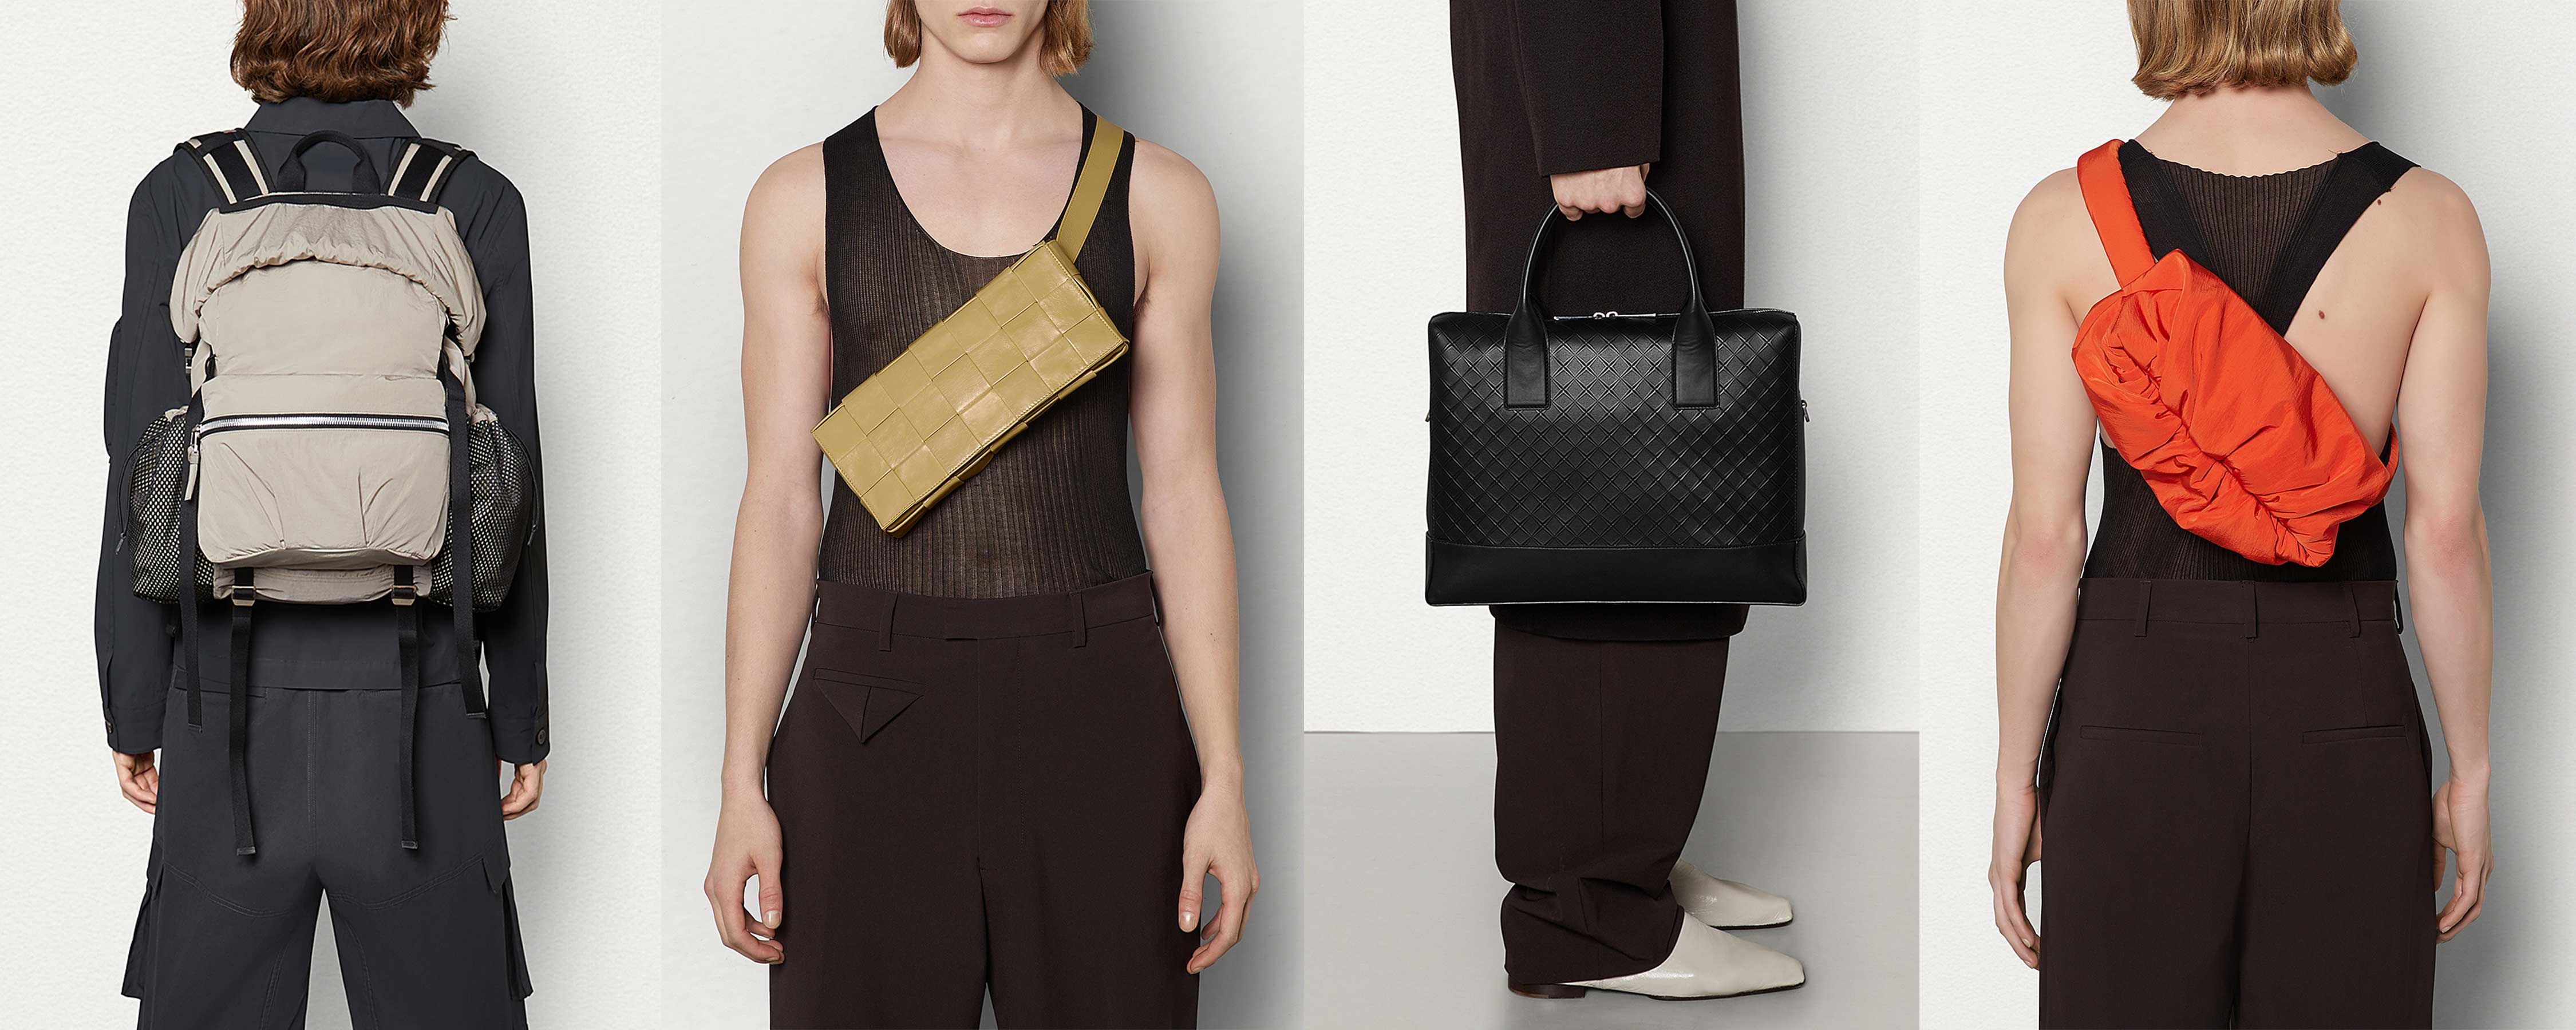 Shop Bottega Veneta's latest bags from the comfort of your home